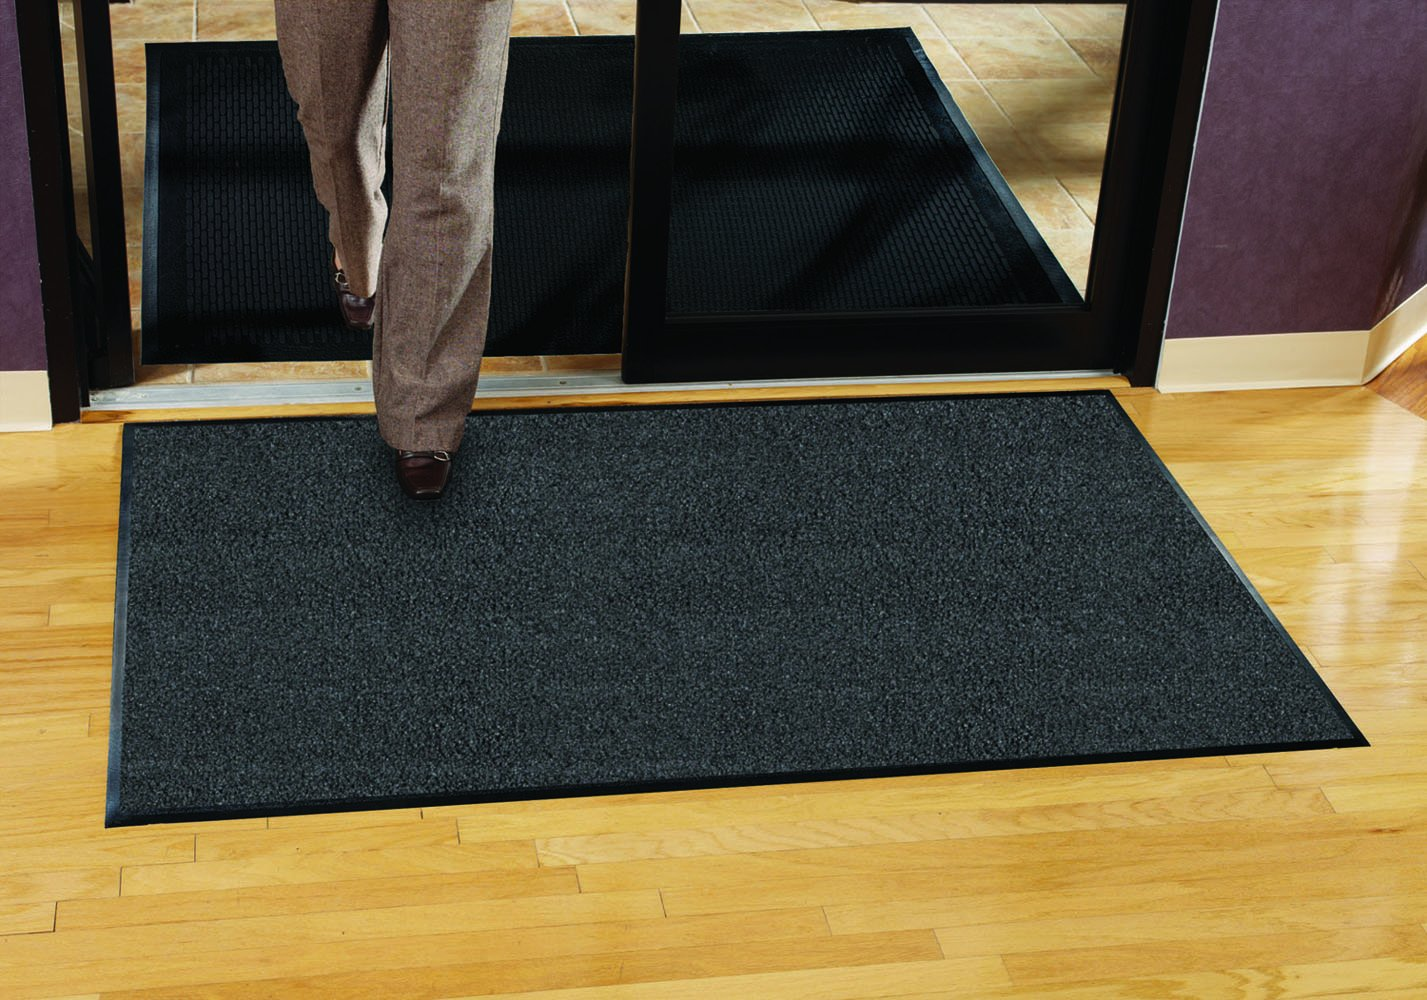 Guardian Platinum Series Indoor Wiper Floor Mat, Rubber with Nylon Carpet, 3'x15', Grey by Guardian (Image #3)